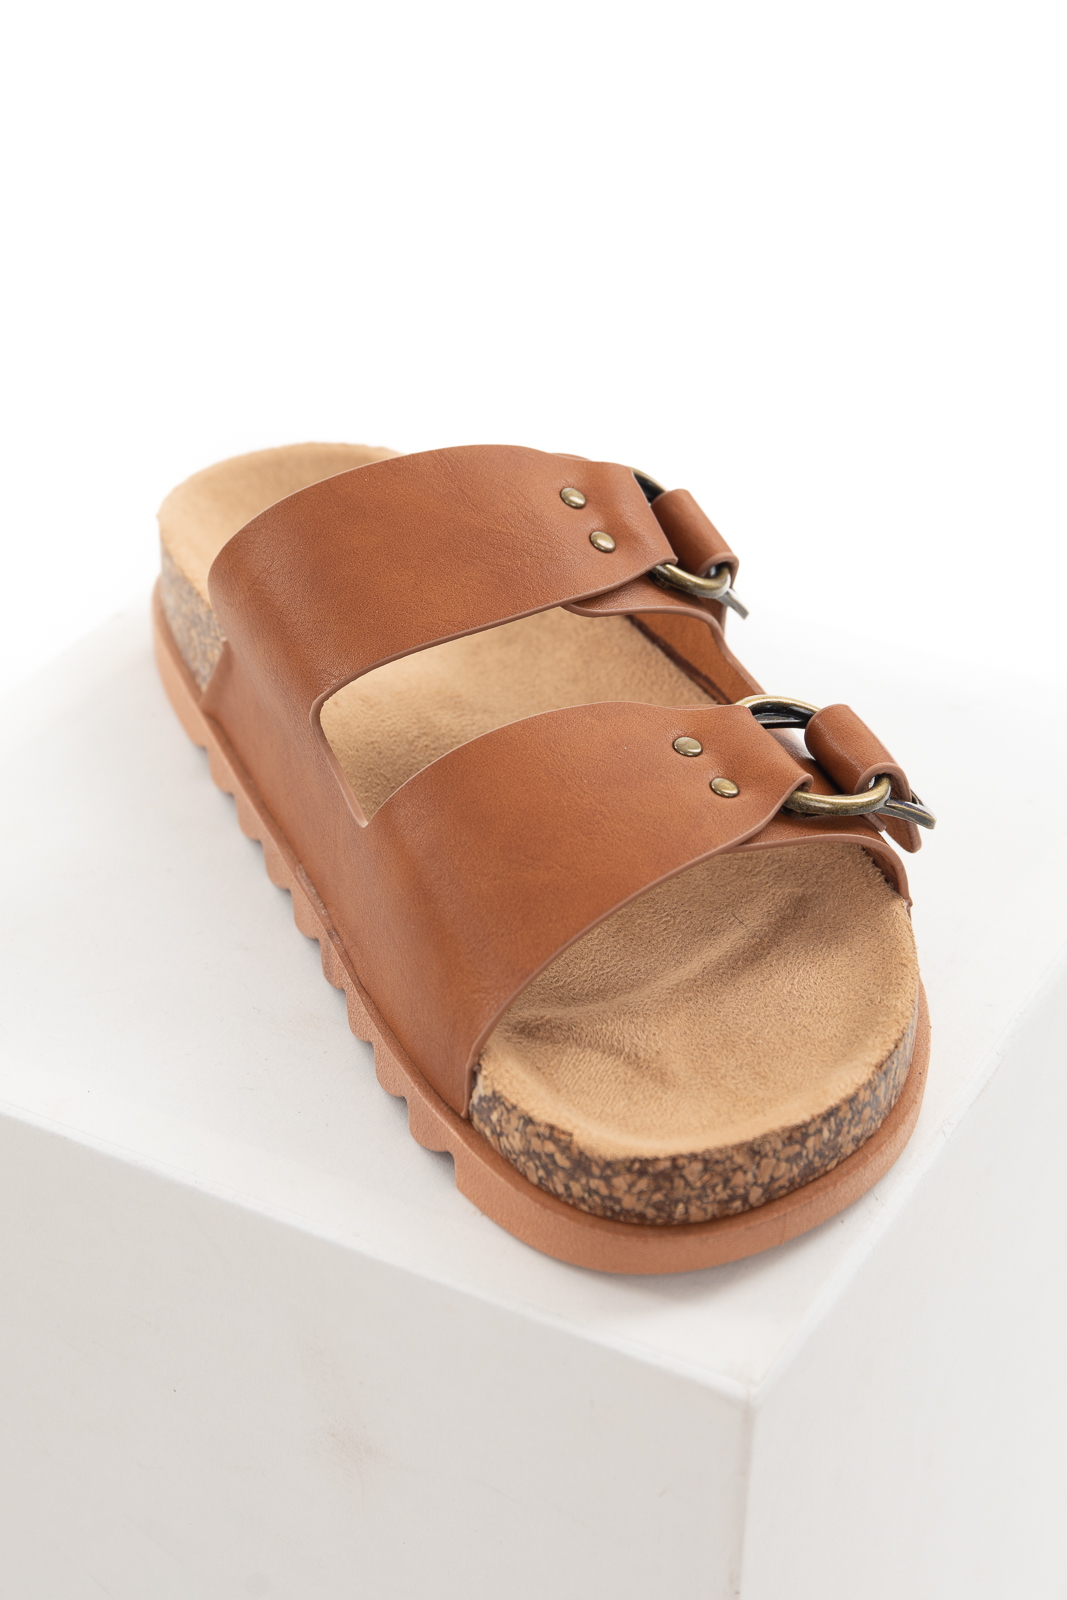 Sepia Open Toe Sandal with Buckle and Stud Detail